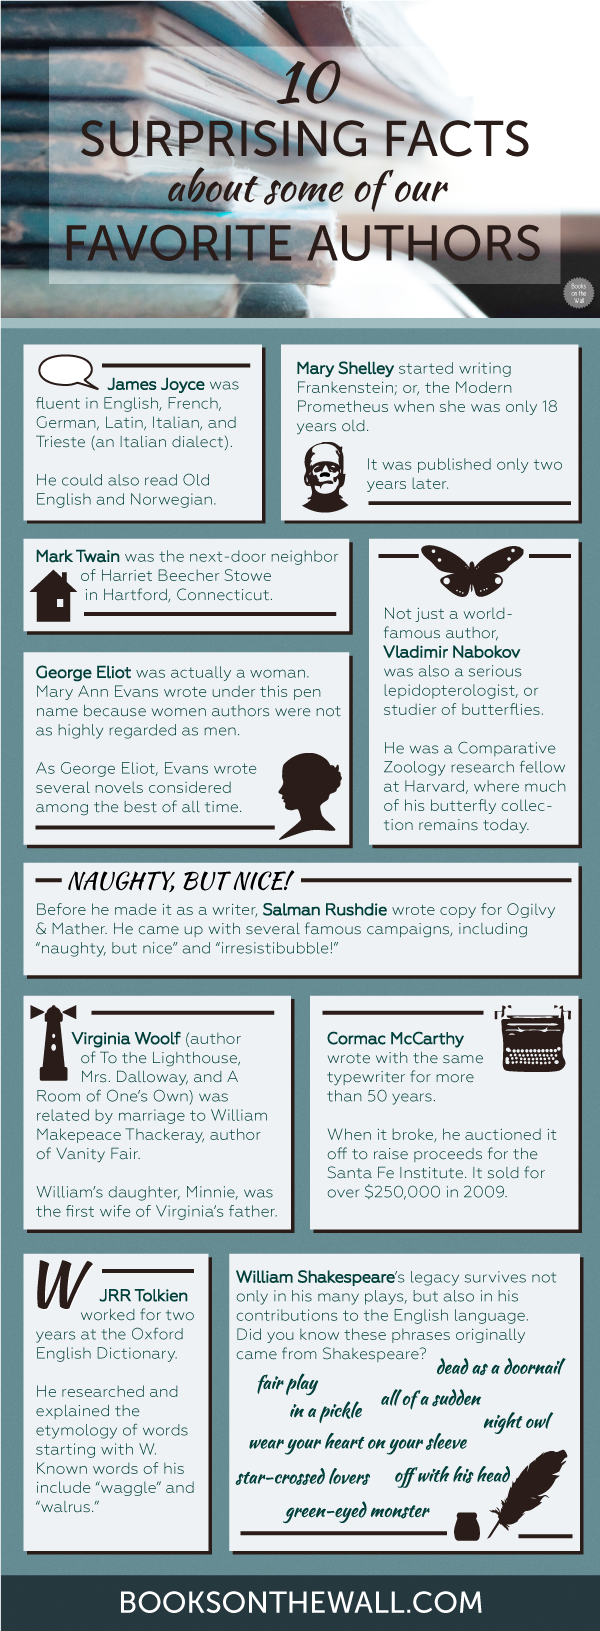 10 Surprising Facts About Some of our Favorite Authors, infographic by Books on the Wall